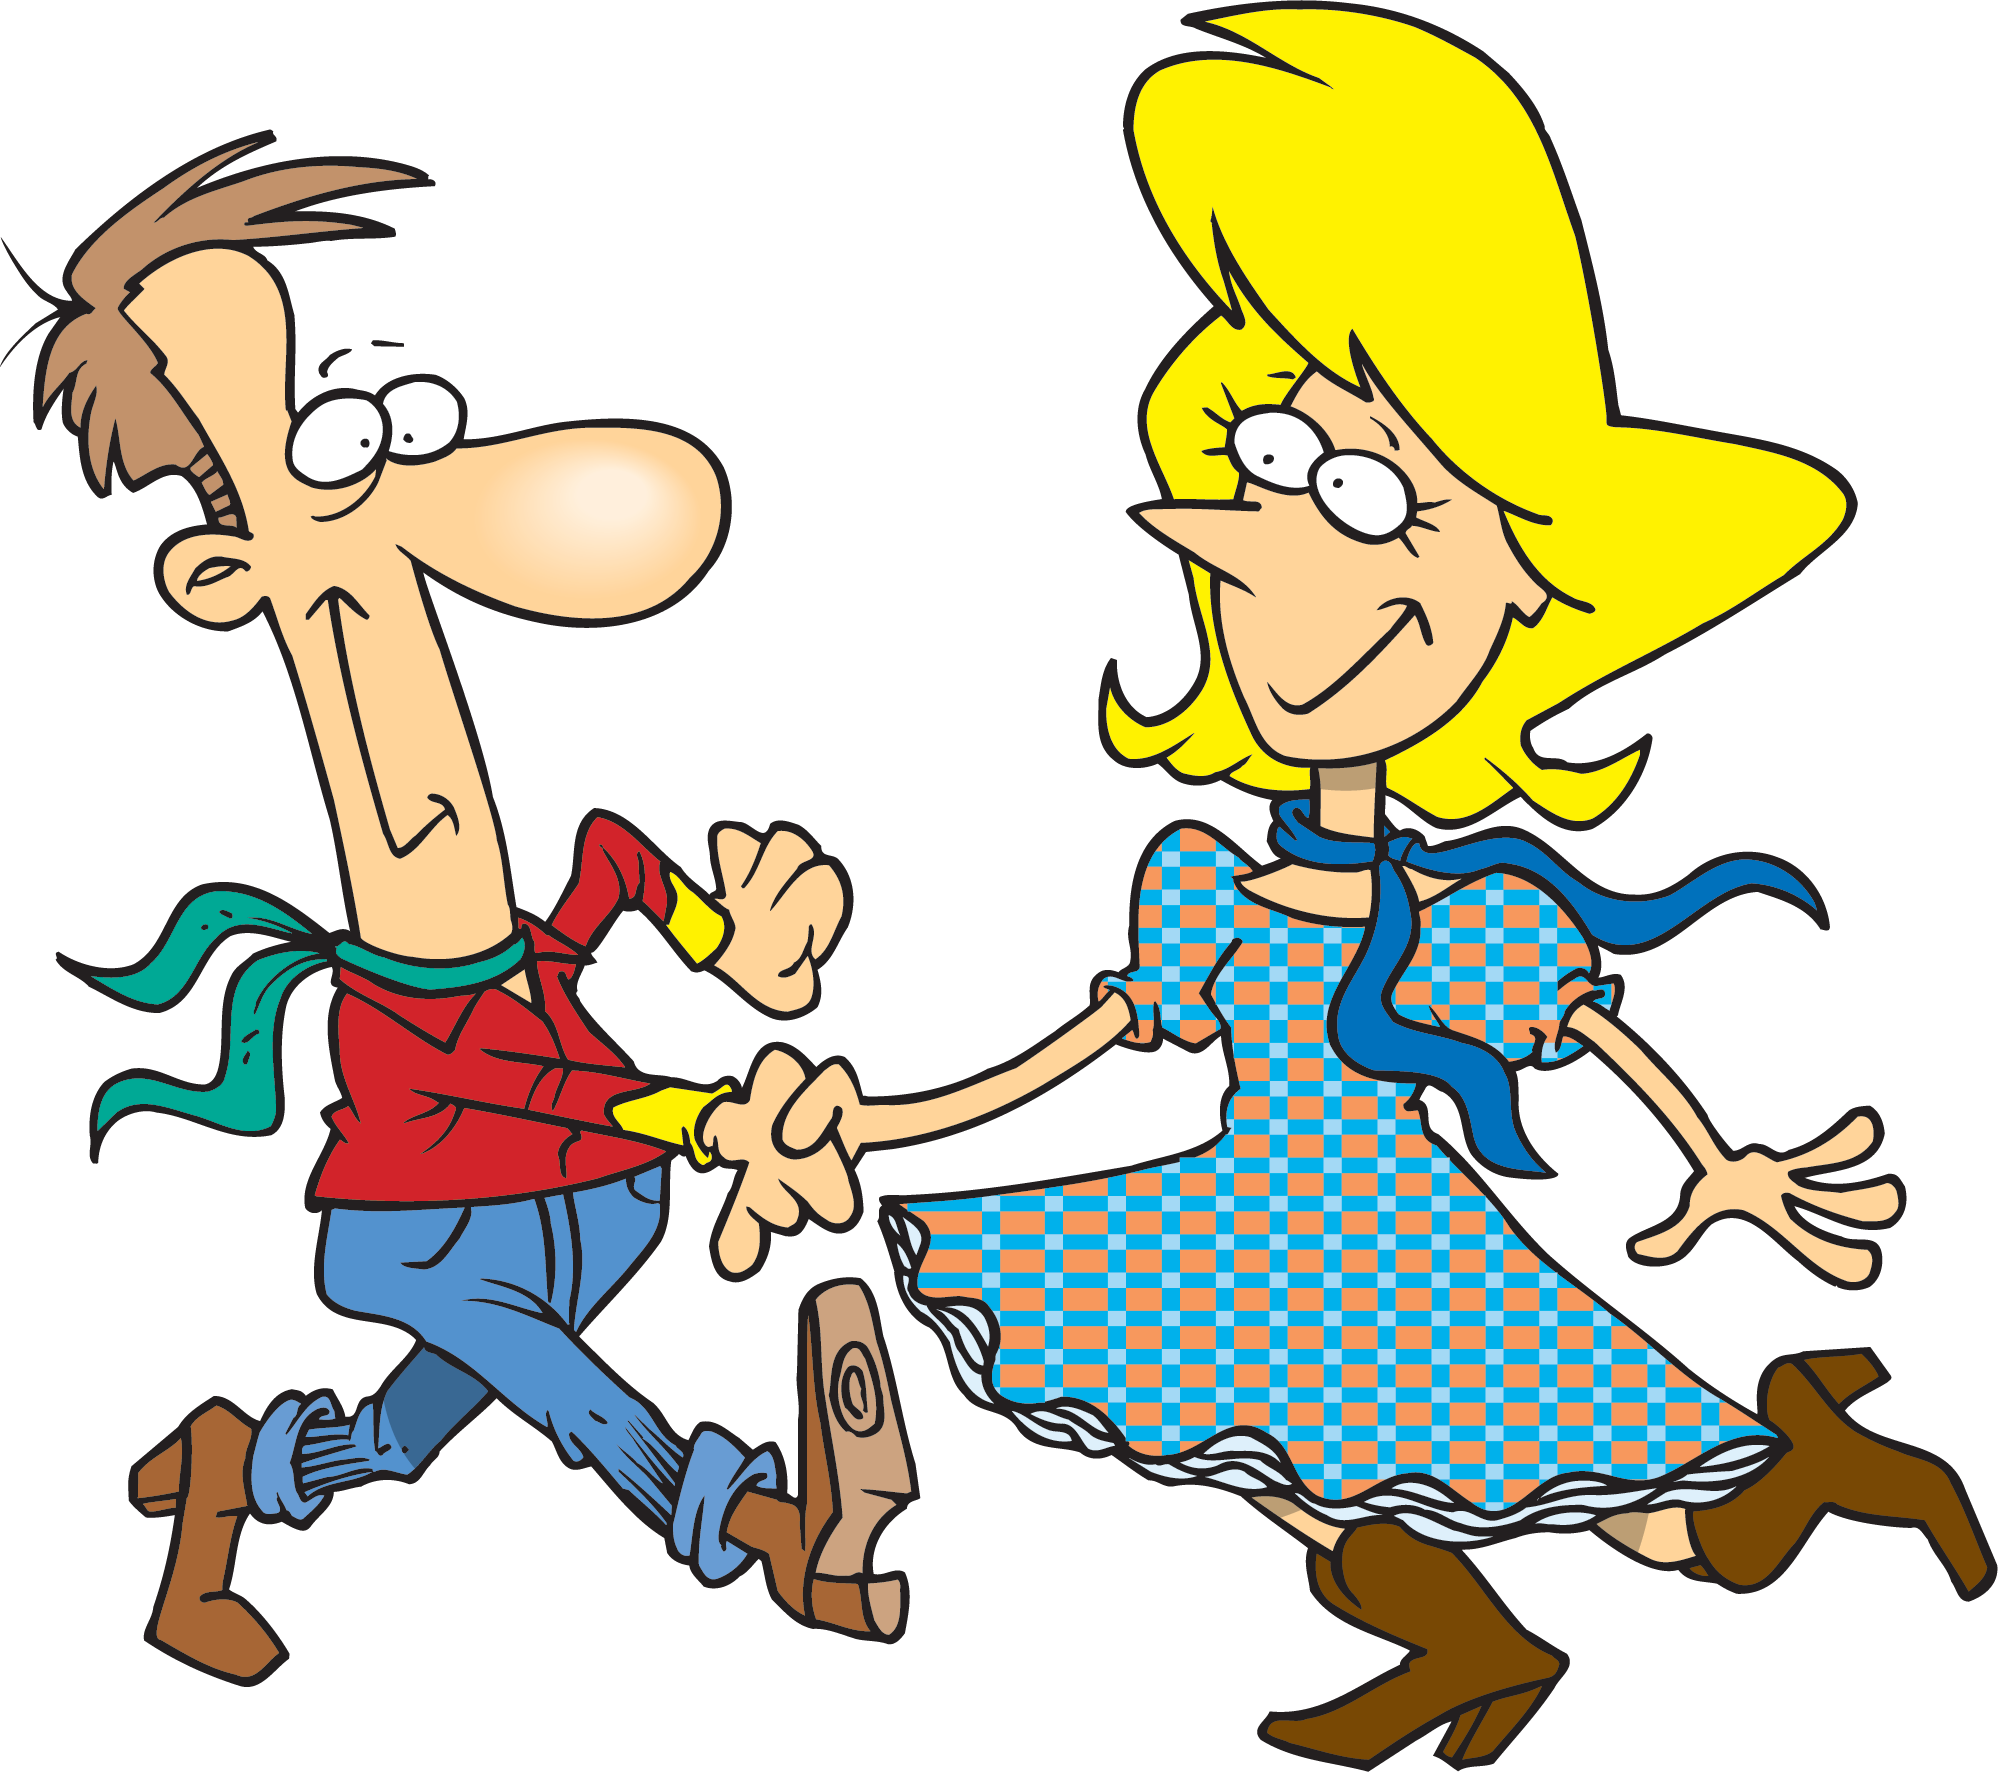 Funny Dancing Cartoon Images Images Clip Art Library Square Dancing Dance Poster Old People Cartoon